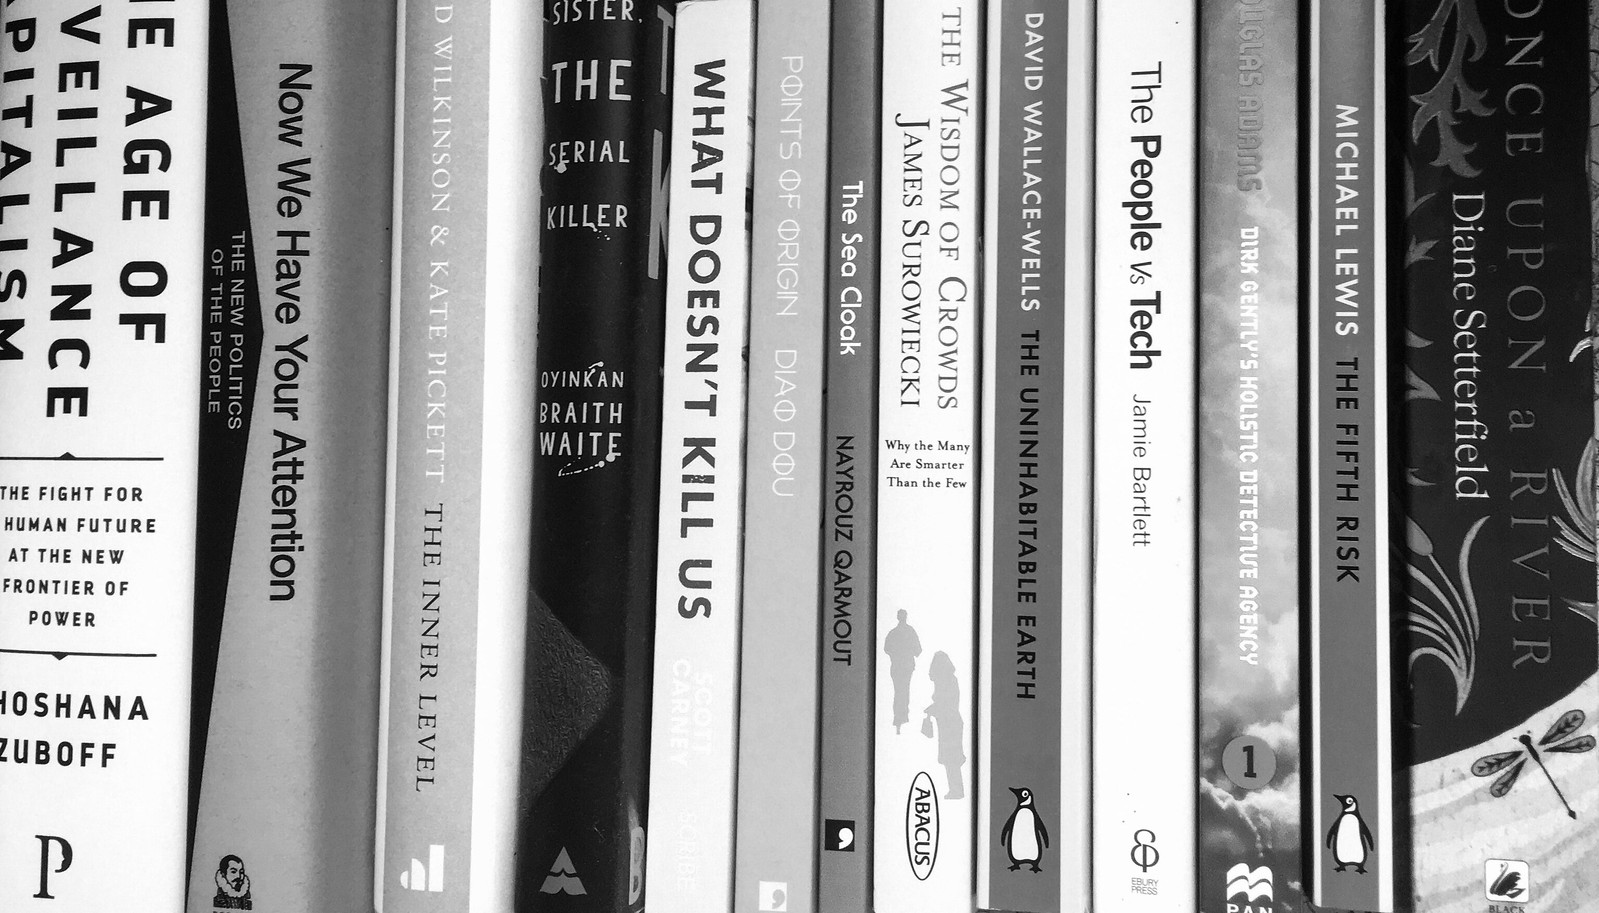 Book stack rotated